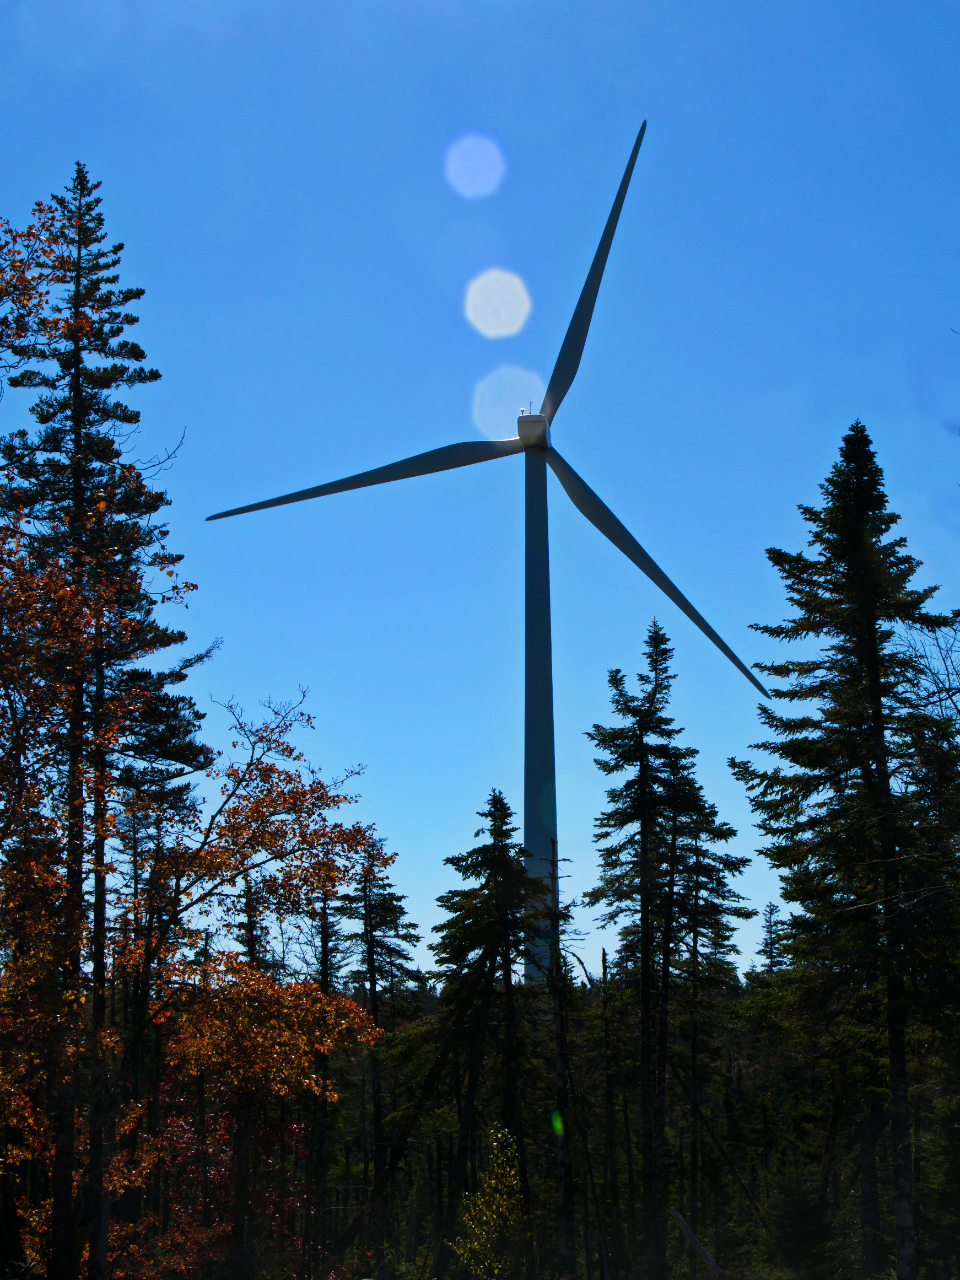 Free stock photo of wind mill